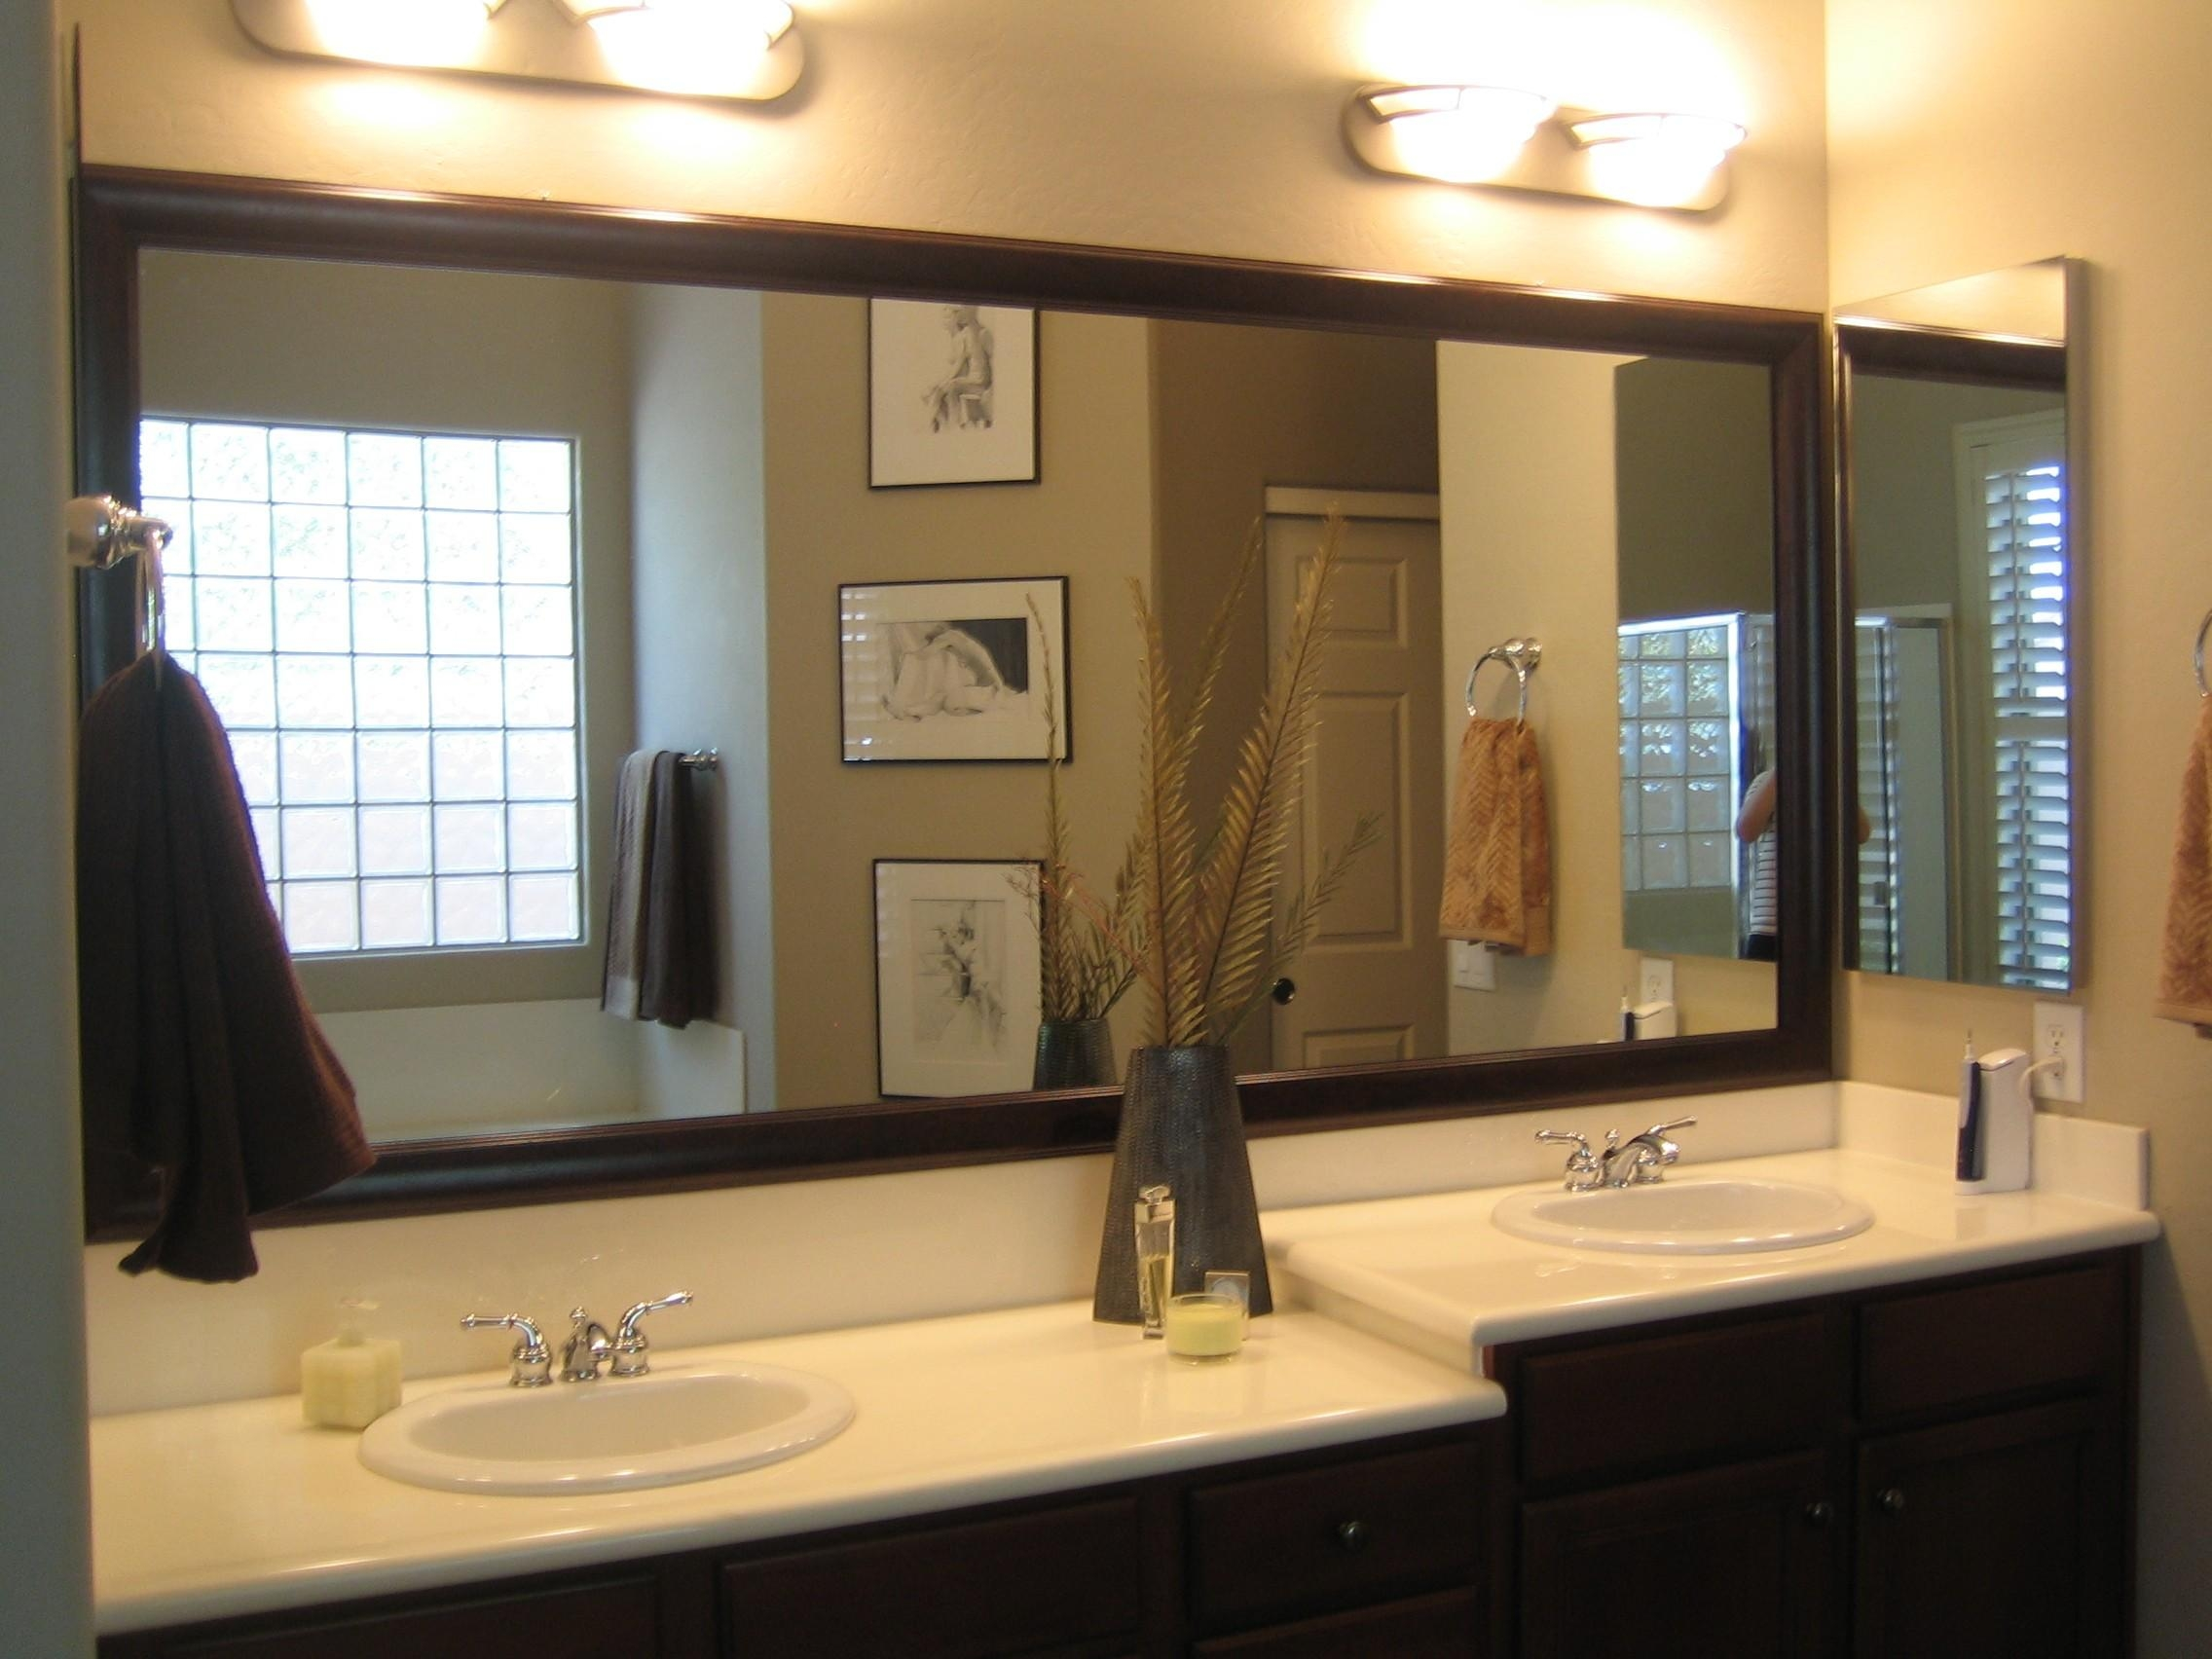 Vanity Mirror With Lights For Sale Tags : Adorable Bathroom With Bathroom Wall Mirrors With Lights (Image 18 of 20)